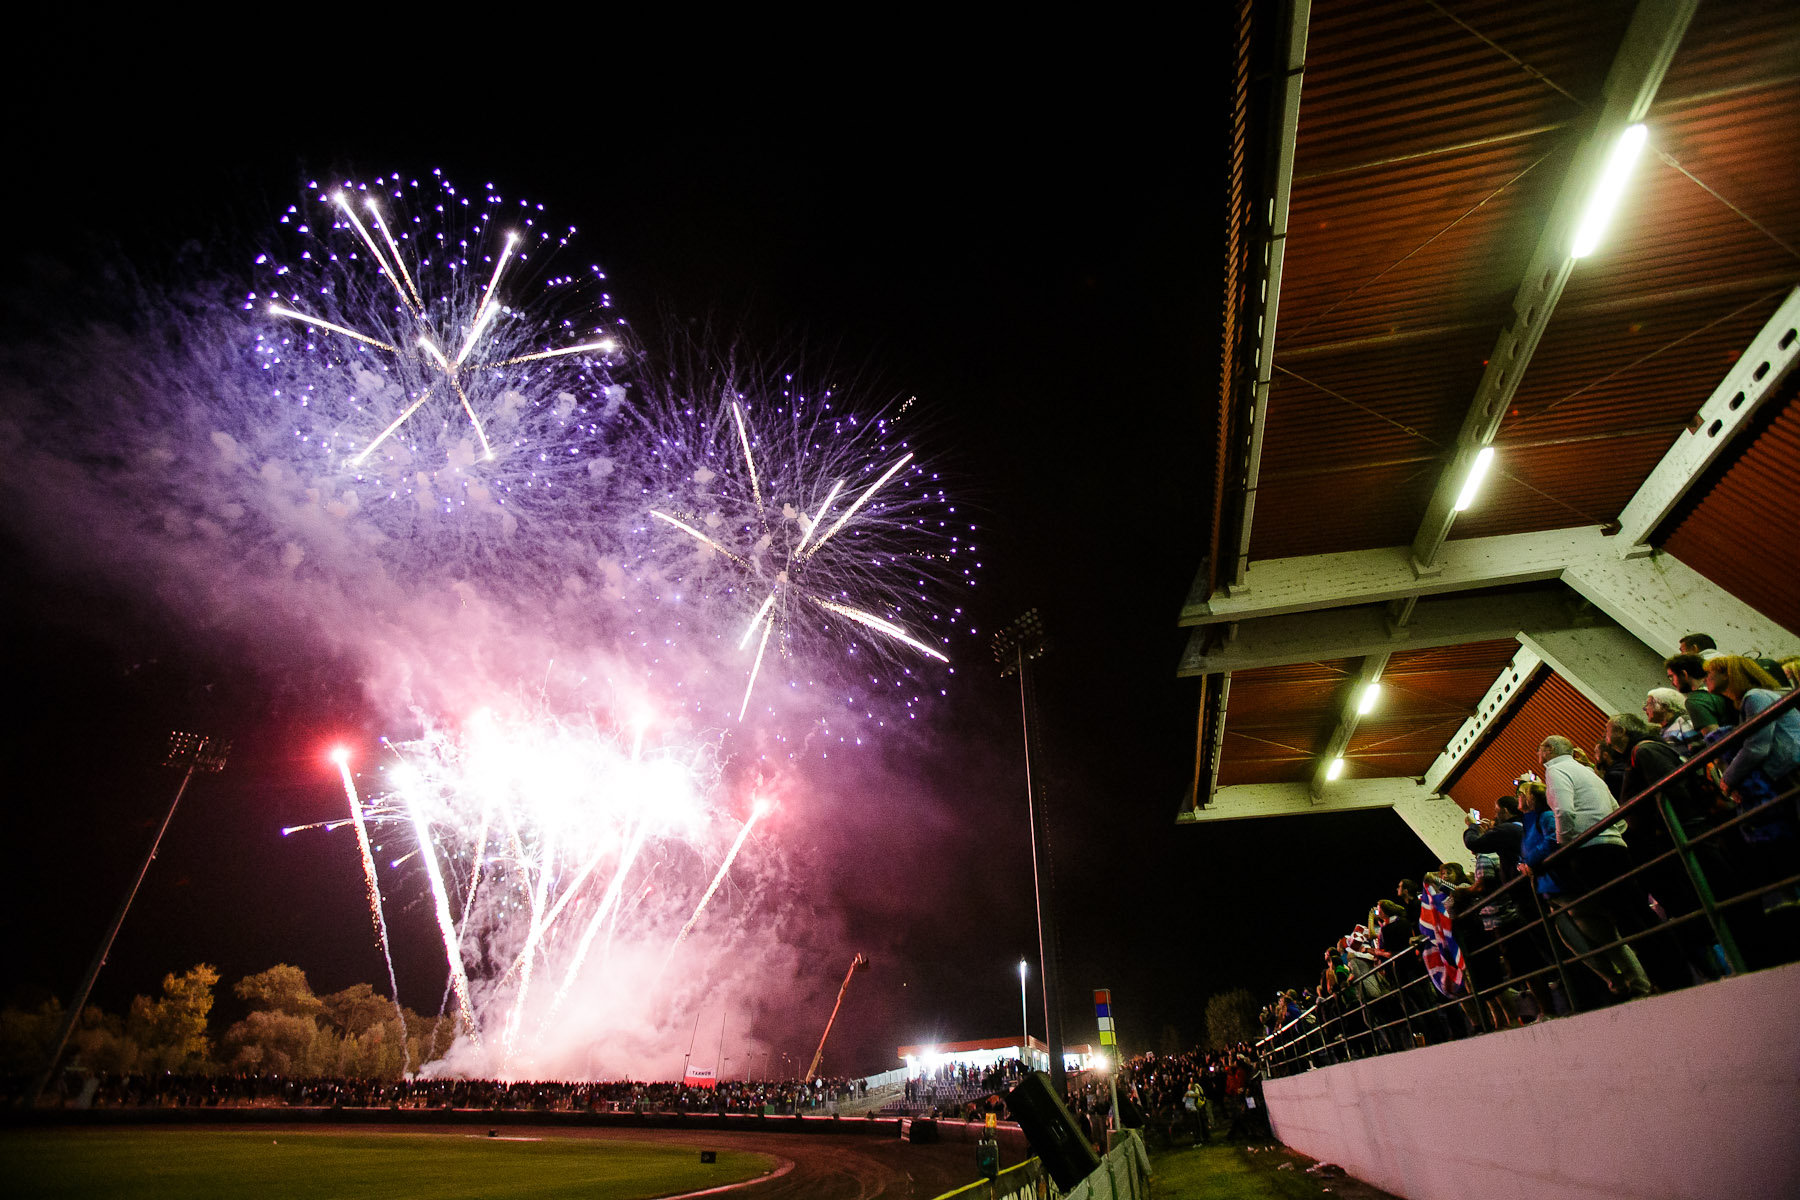 Fiireworks mark the end of the competition at the Mitas Slovenian FIM Speedway Grand Prix at Matija Gubec Stadium in Krsko, Slovenia, Sep. 12, 2015.